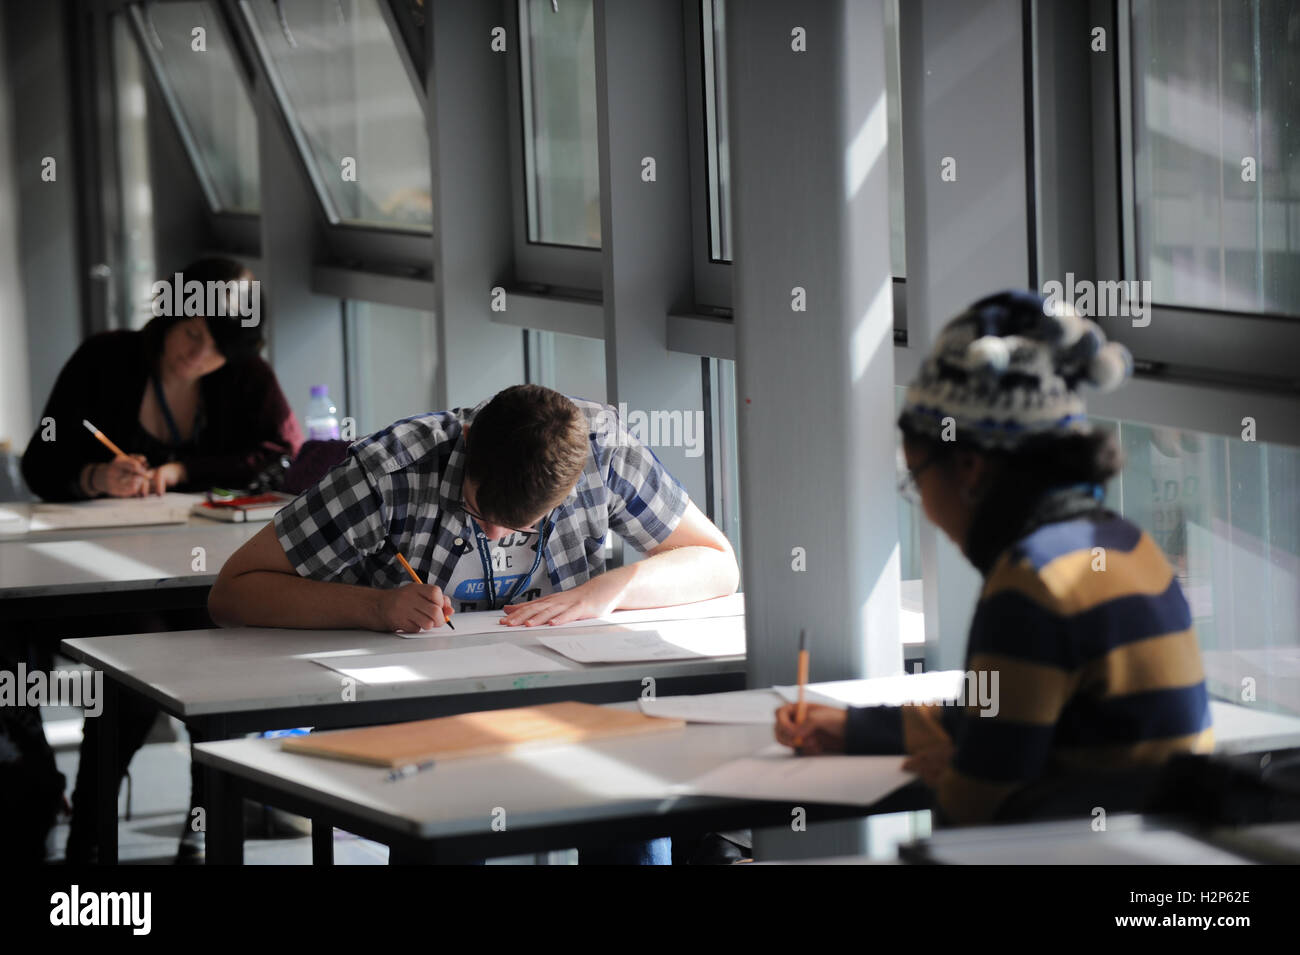 STOCK IMAGE College students work hard on their education in the classroom. - Stock Image